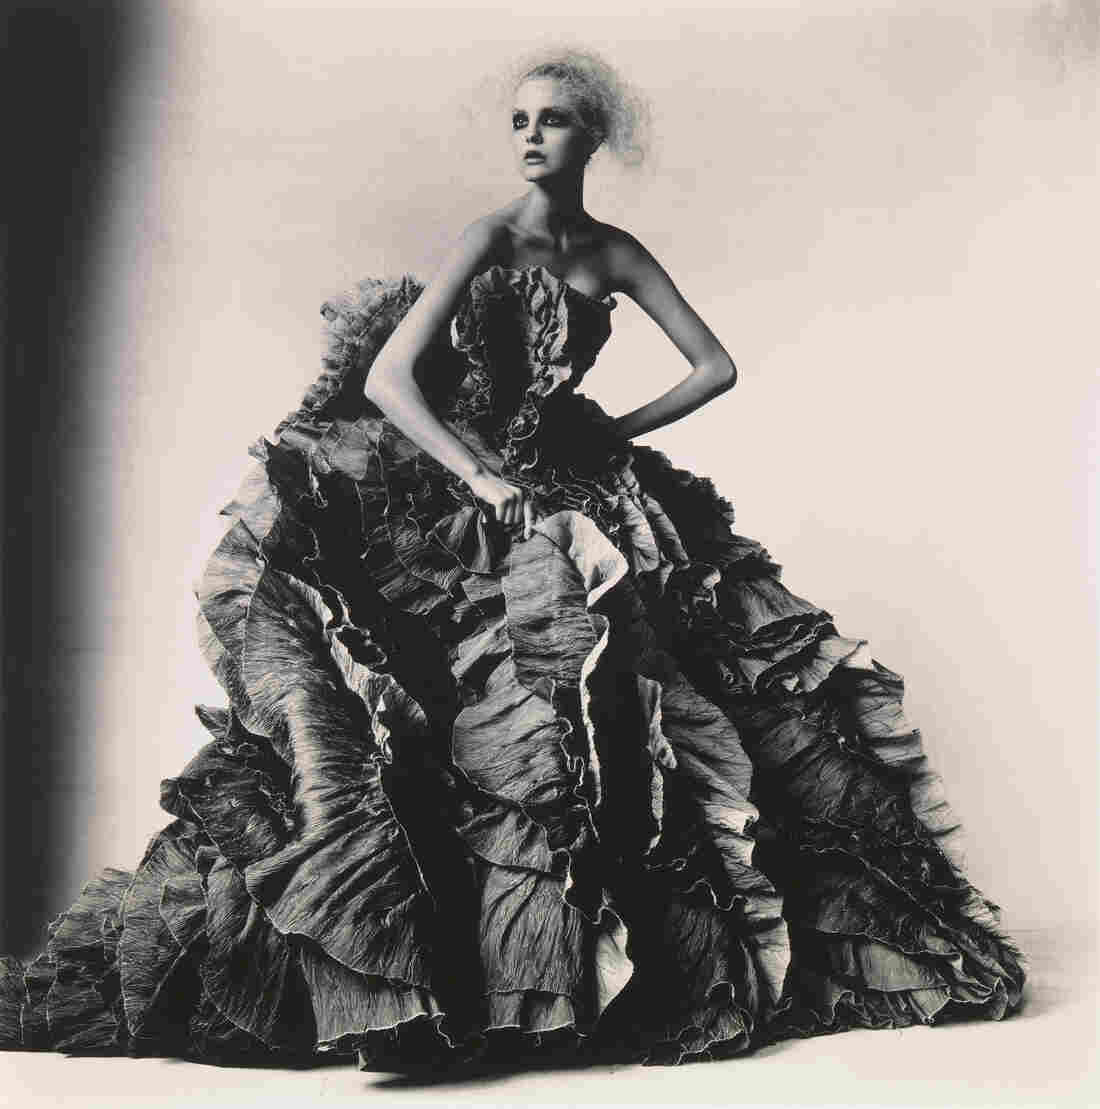 During his decades-spanning career Irving Penn photographed everything from fashion models to frozen food. Above, Ball Dress by Olivier Theyskens for Nina Ricci, New York, 2007.